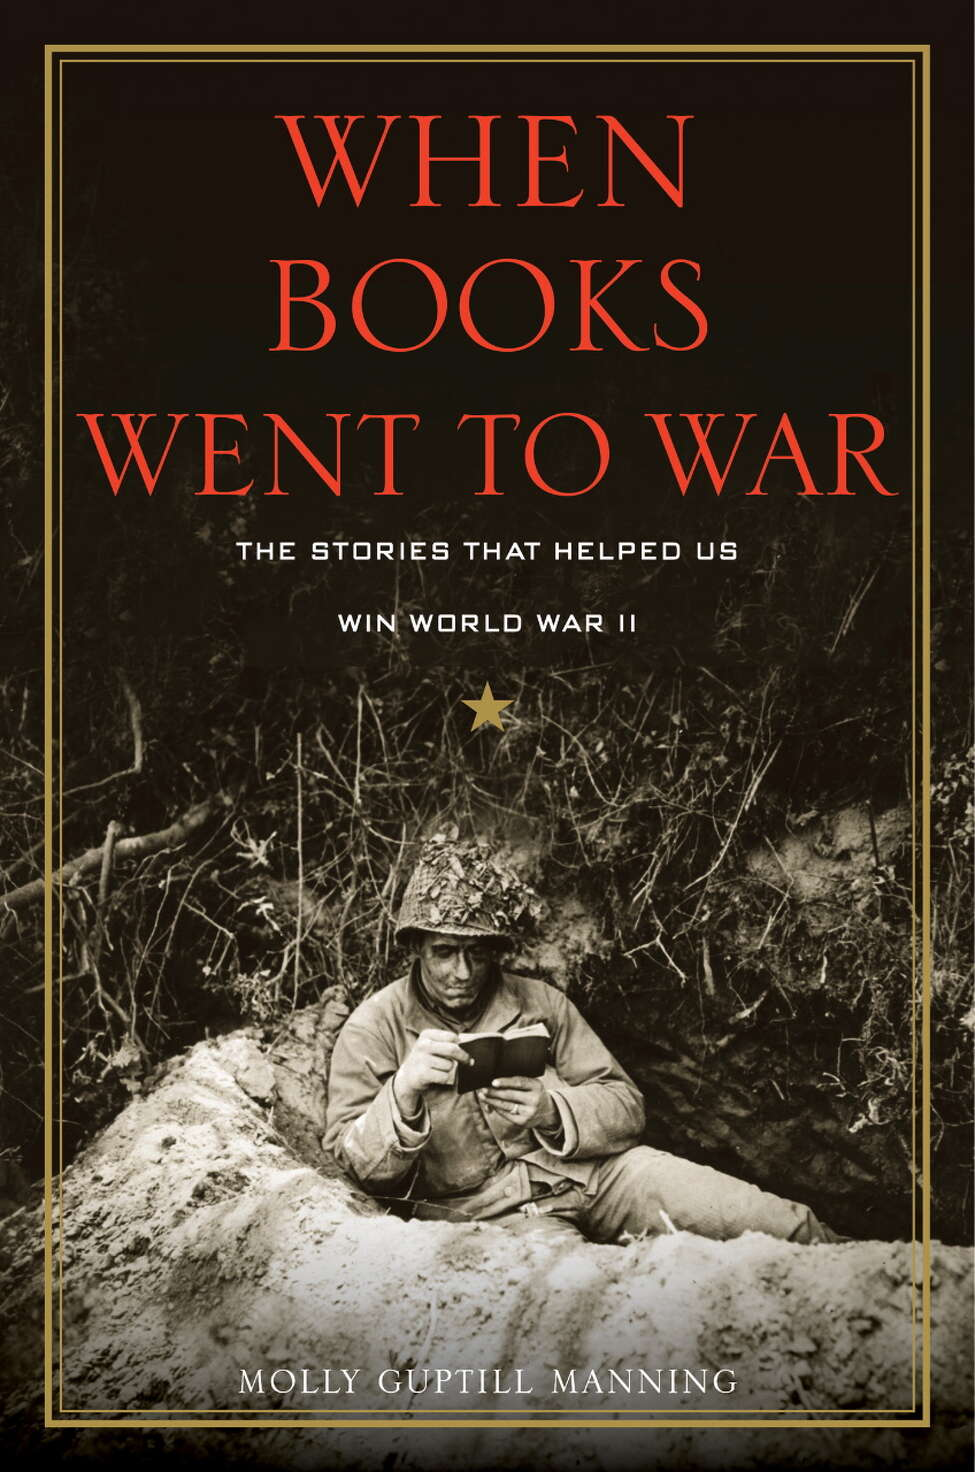 Author Molly Guptill Manning will give a public lecture at Union College's Nott Memorial in Schenectady at 6 p.m. on Monday, Sept. 21, 2015, on her best-selling history book. ORG XMIT: MER2015031212190800